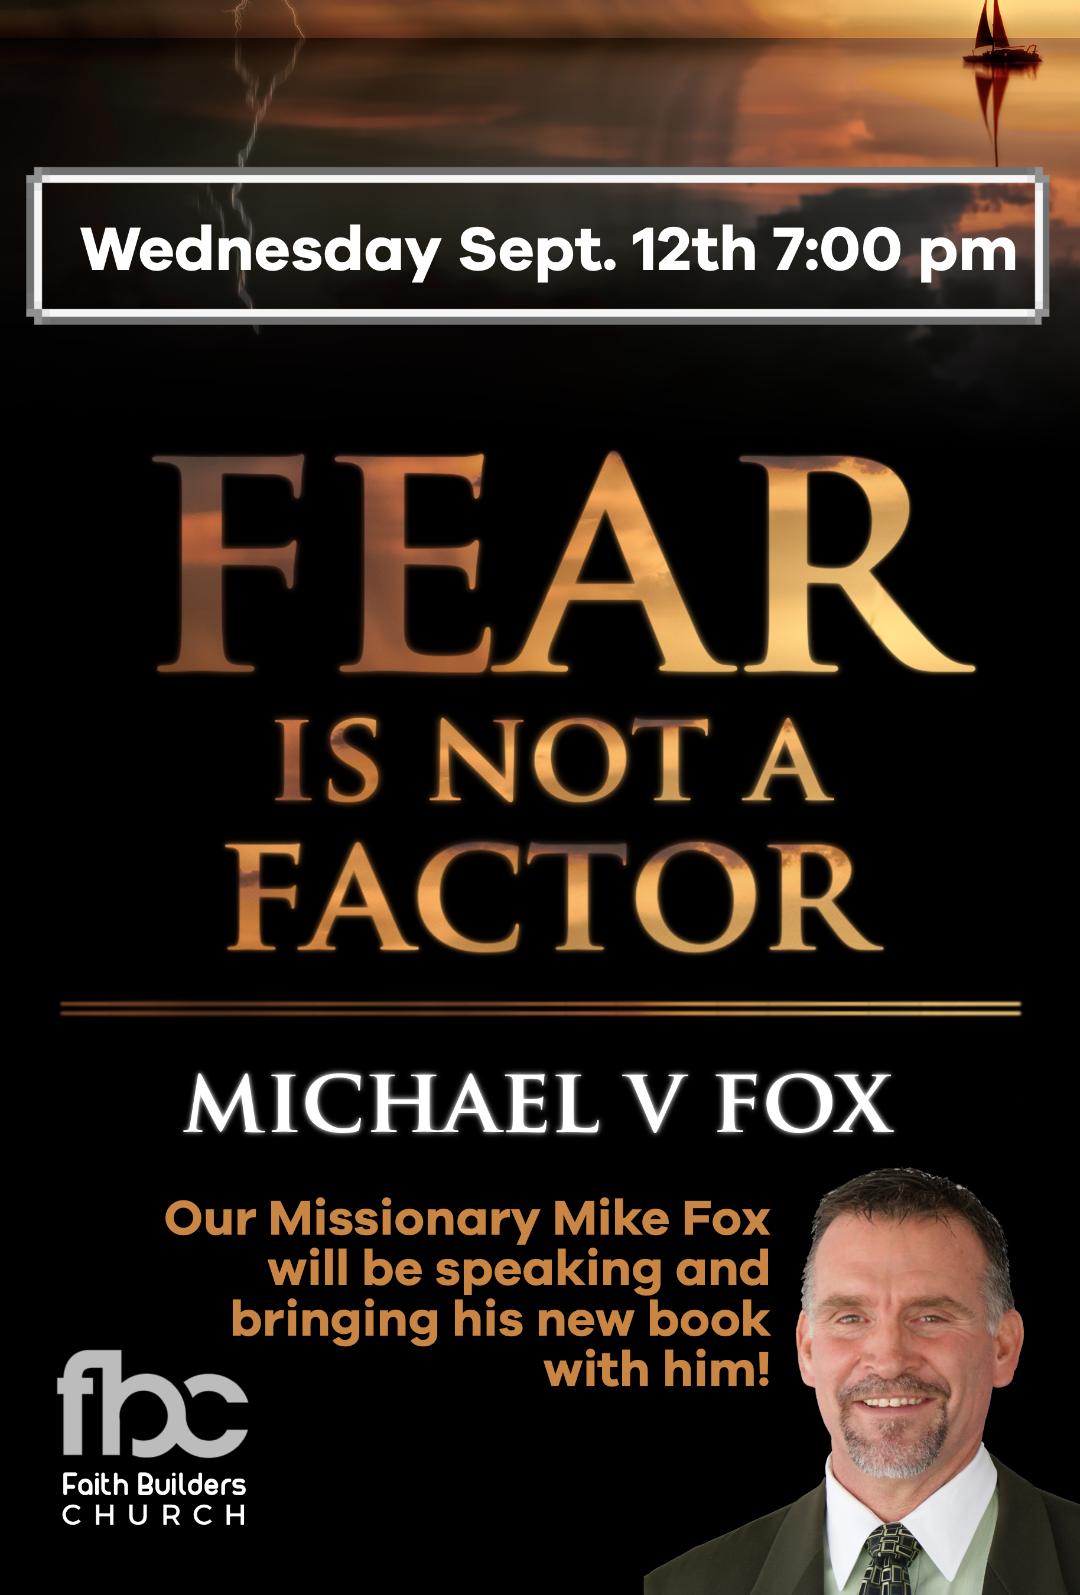 Wednesday September 7th at 7:00 pm - Missionary: Mike Fox